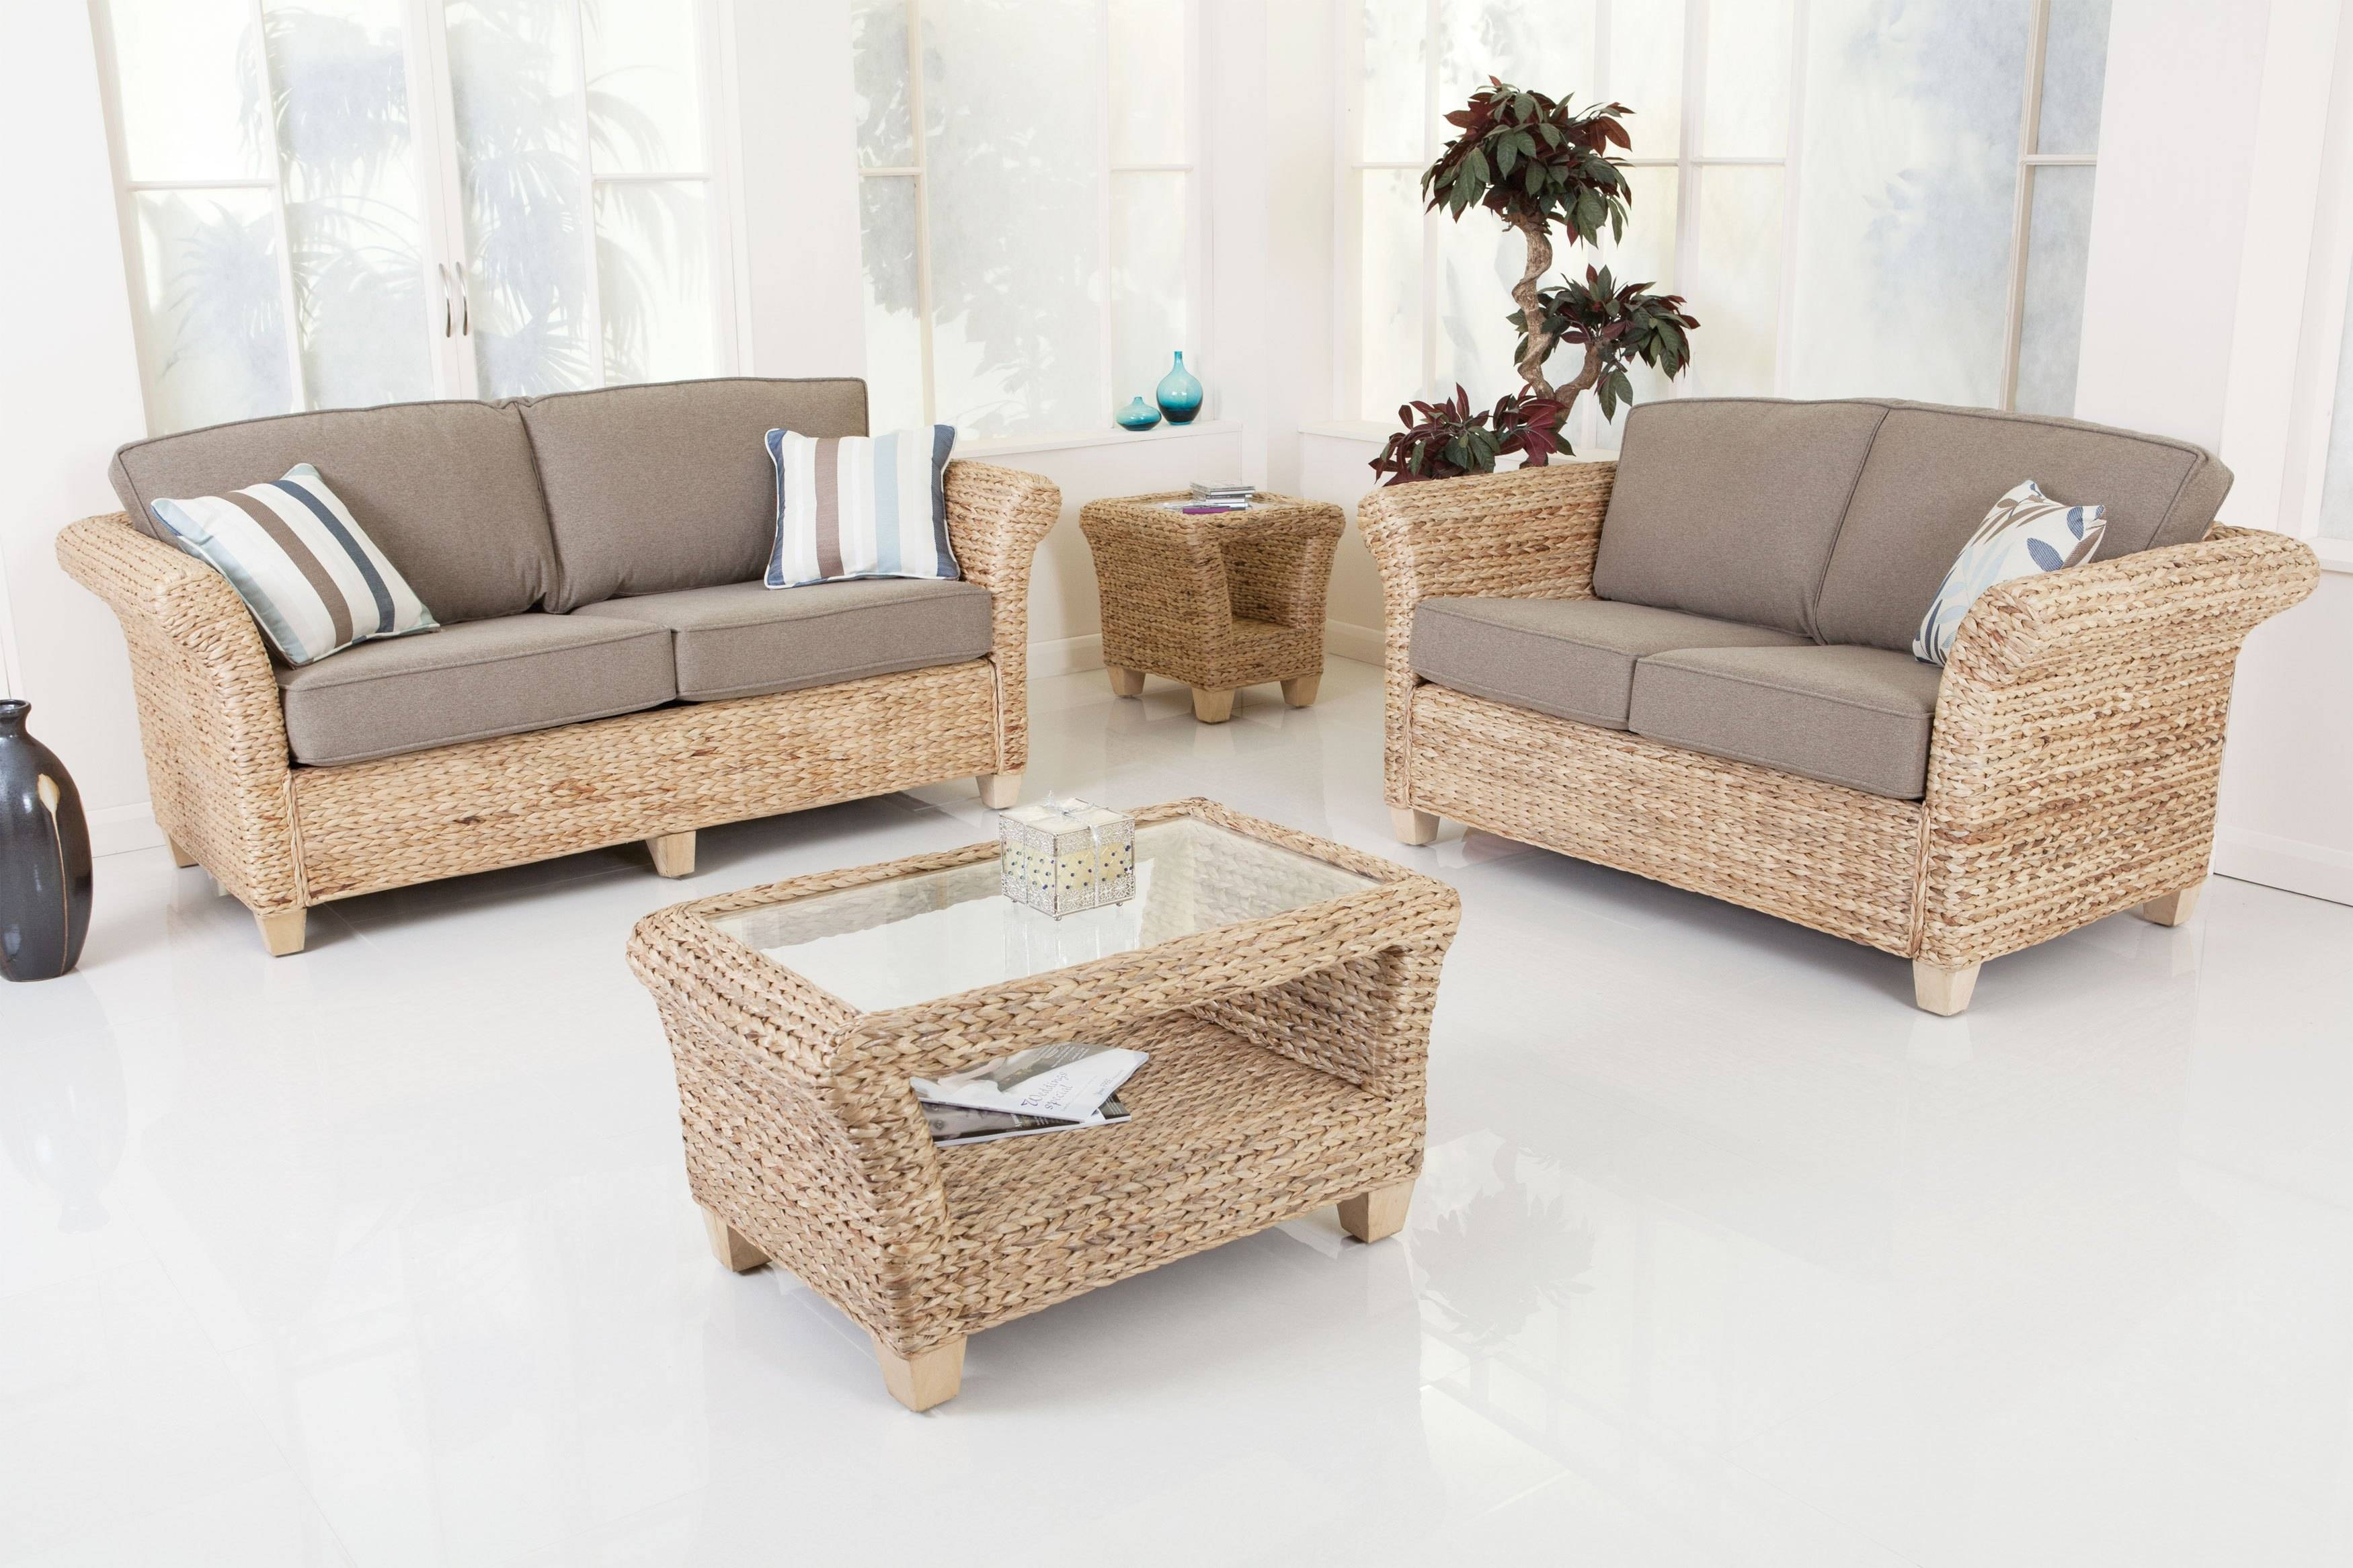 Bamboo Chair Price In Chennai | Ideasidea intended for Richmond Sofas (Image 1 of 30)